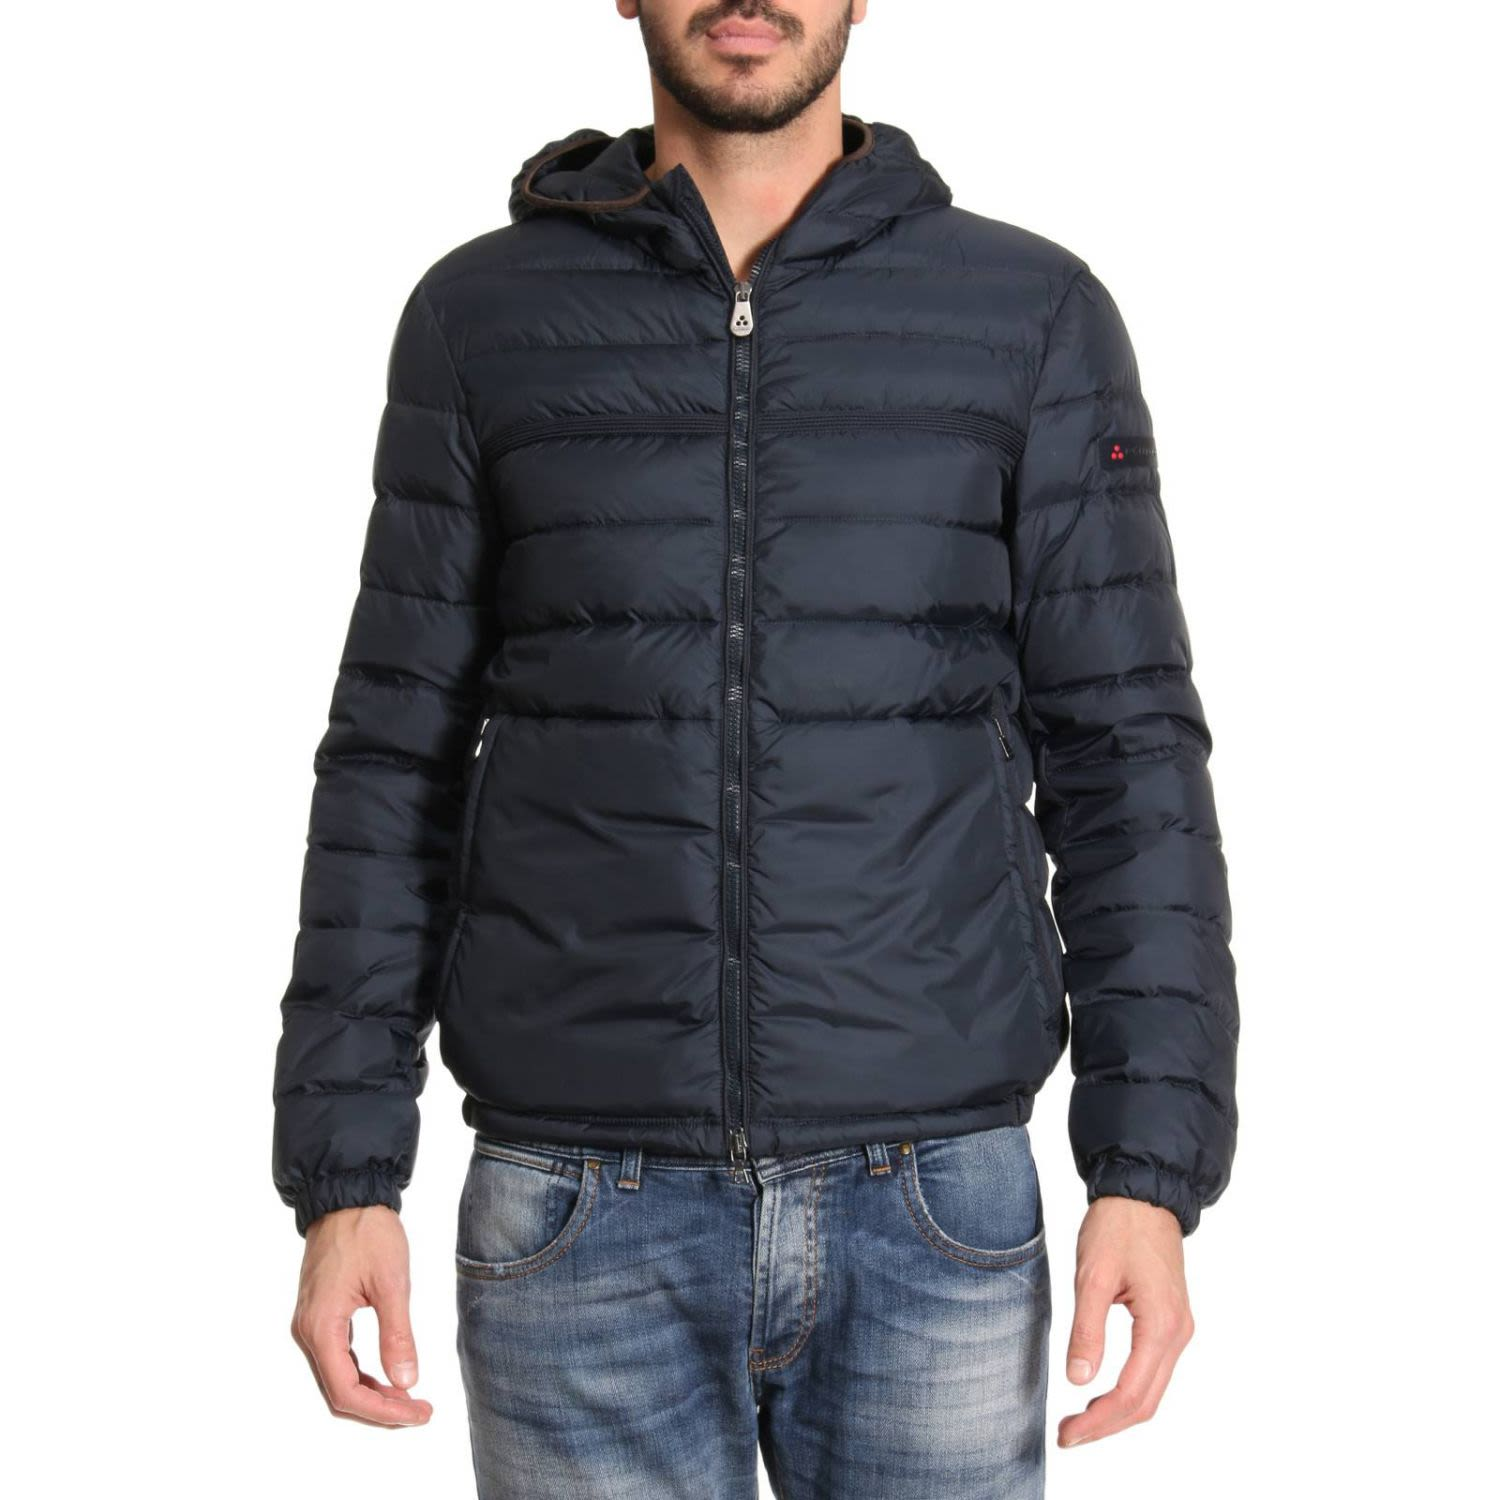 Jacket Jacket Men Peuterey